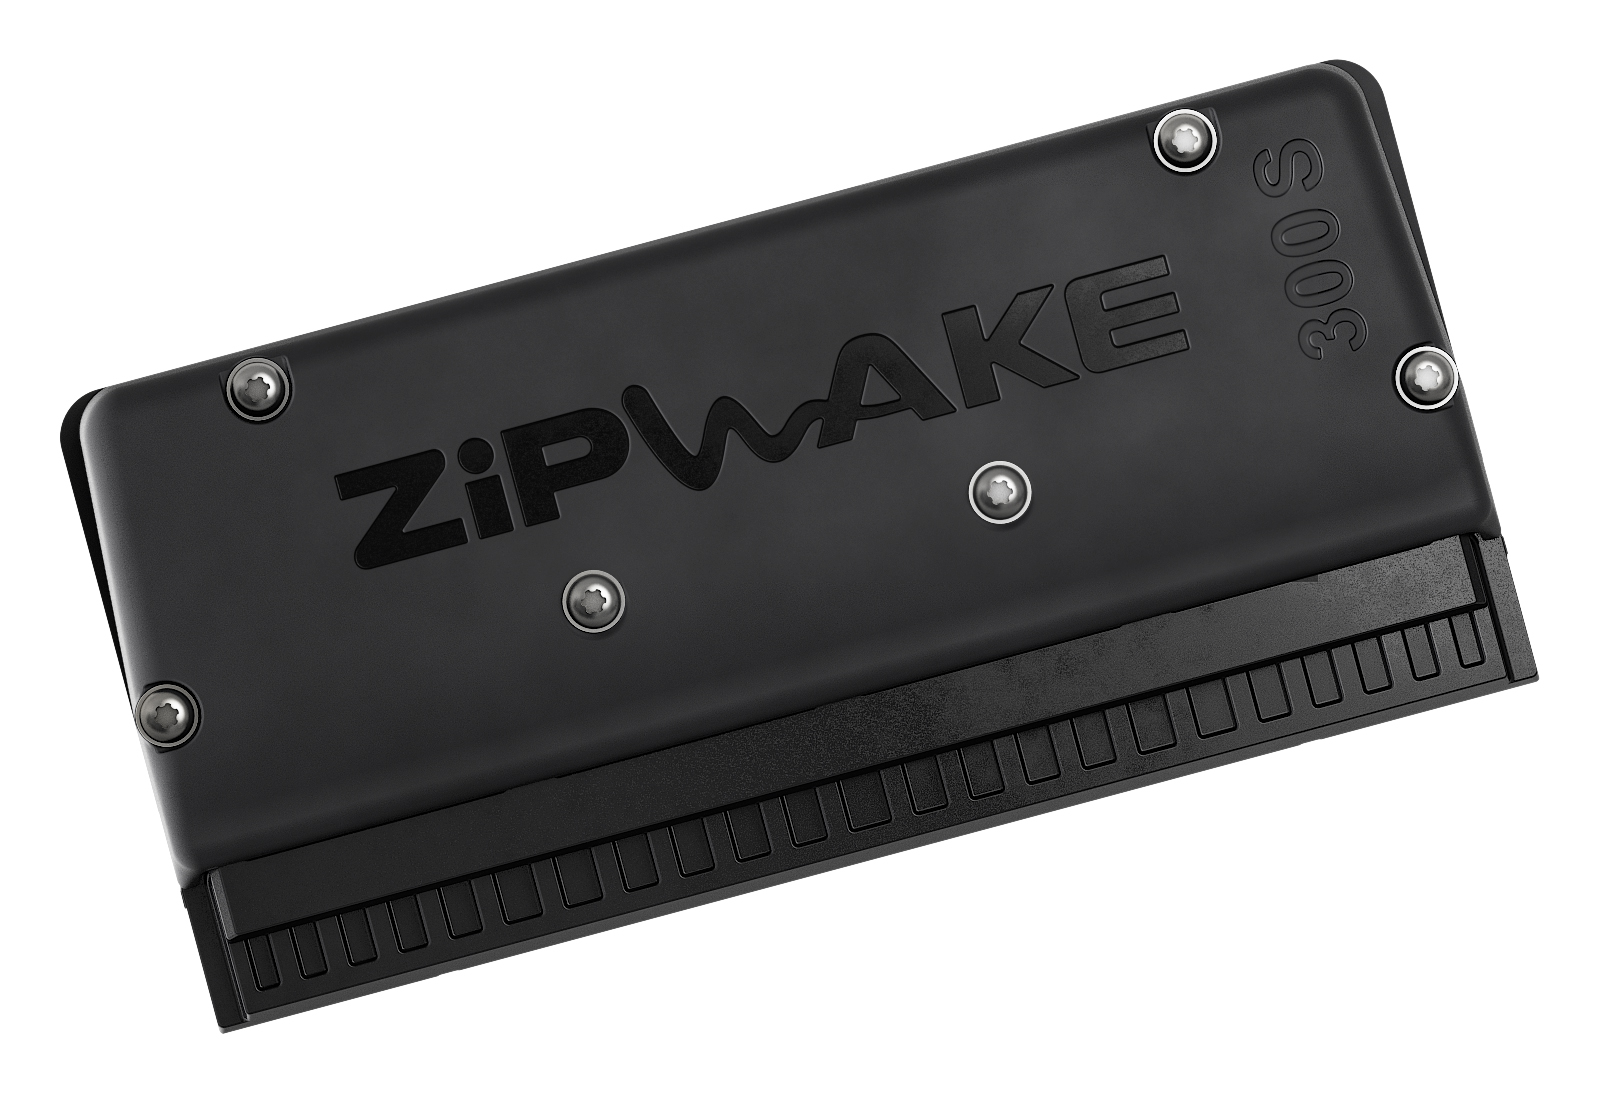 Zipwake interceptorji